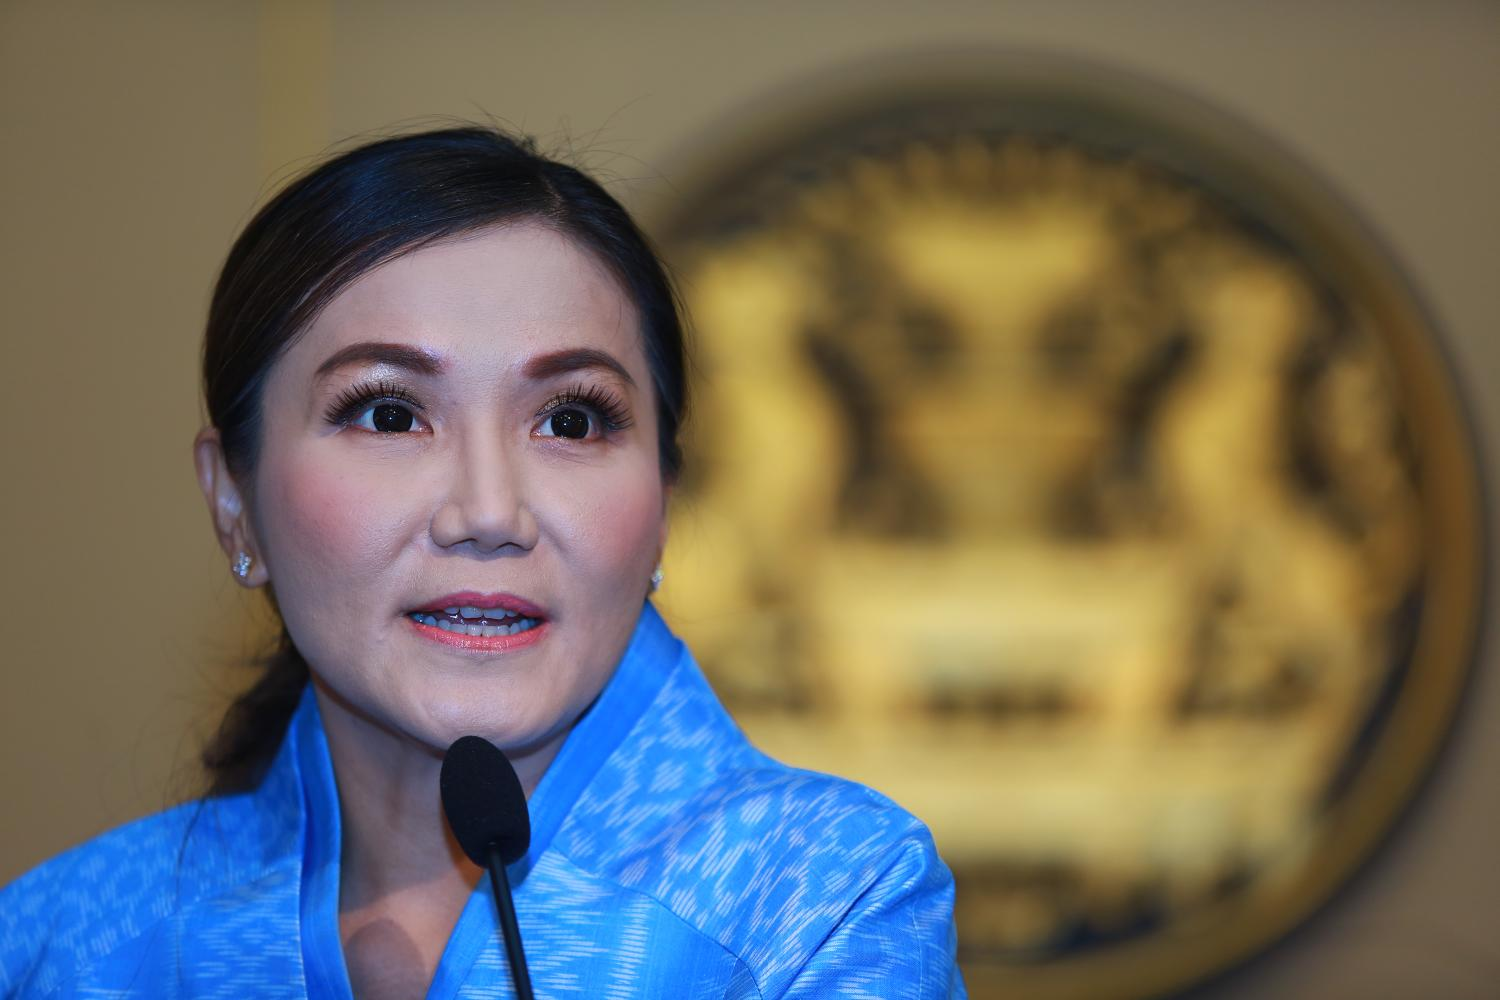 Government spokeswoman Narumon Pinyosinwat speaks to reporters at Government House after the weekly cabinet meeting on Tuesday.Somchai Poomlard